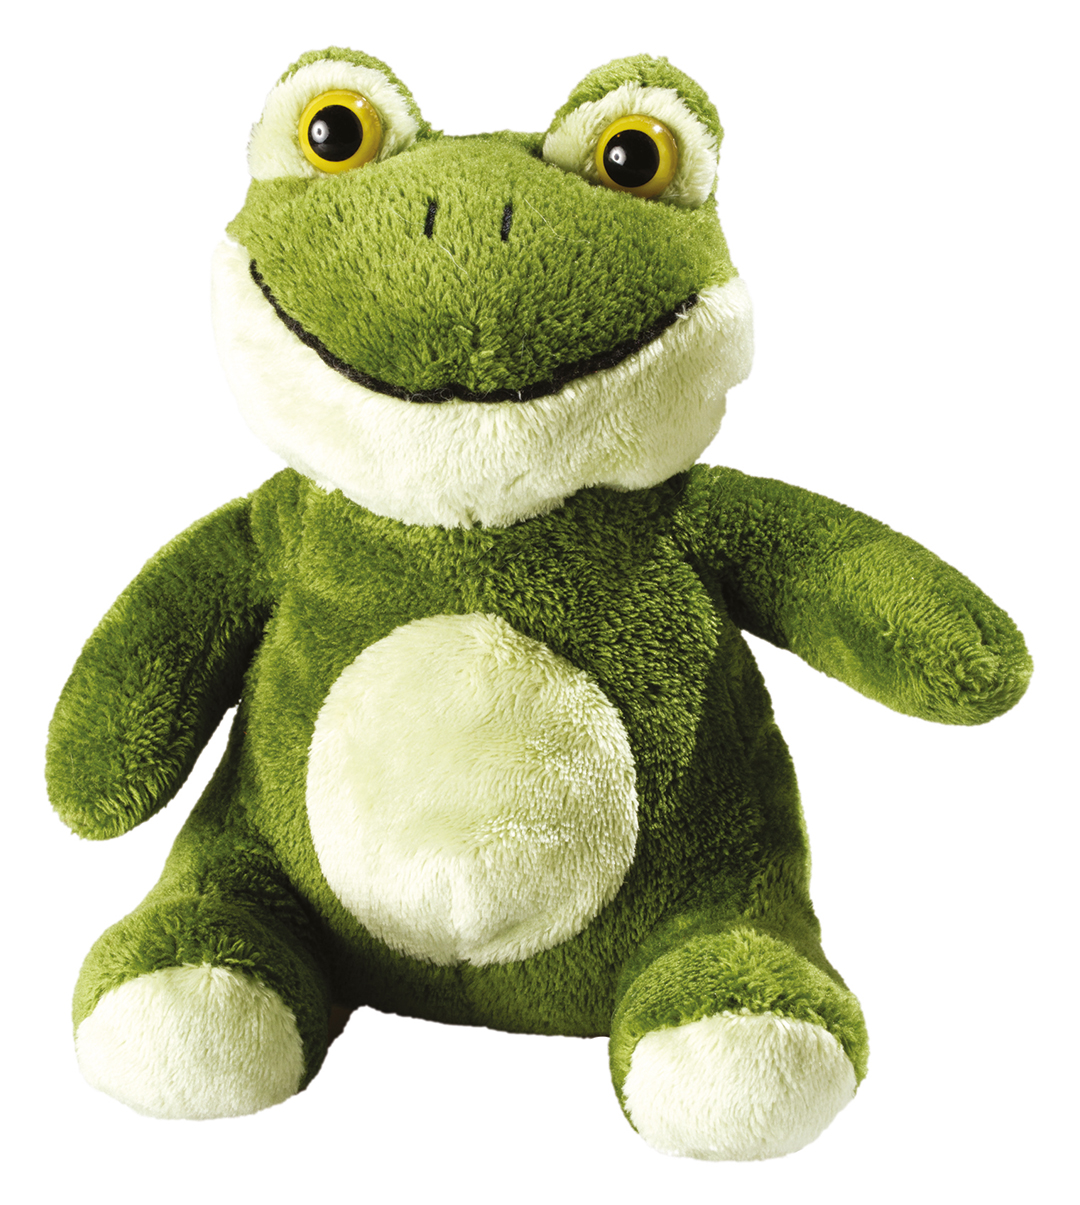 Hans softplush frog